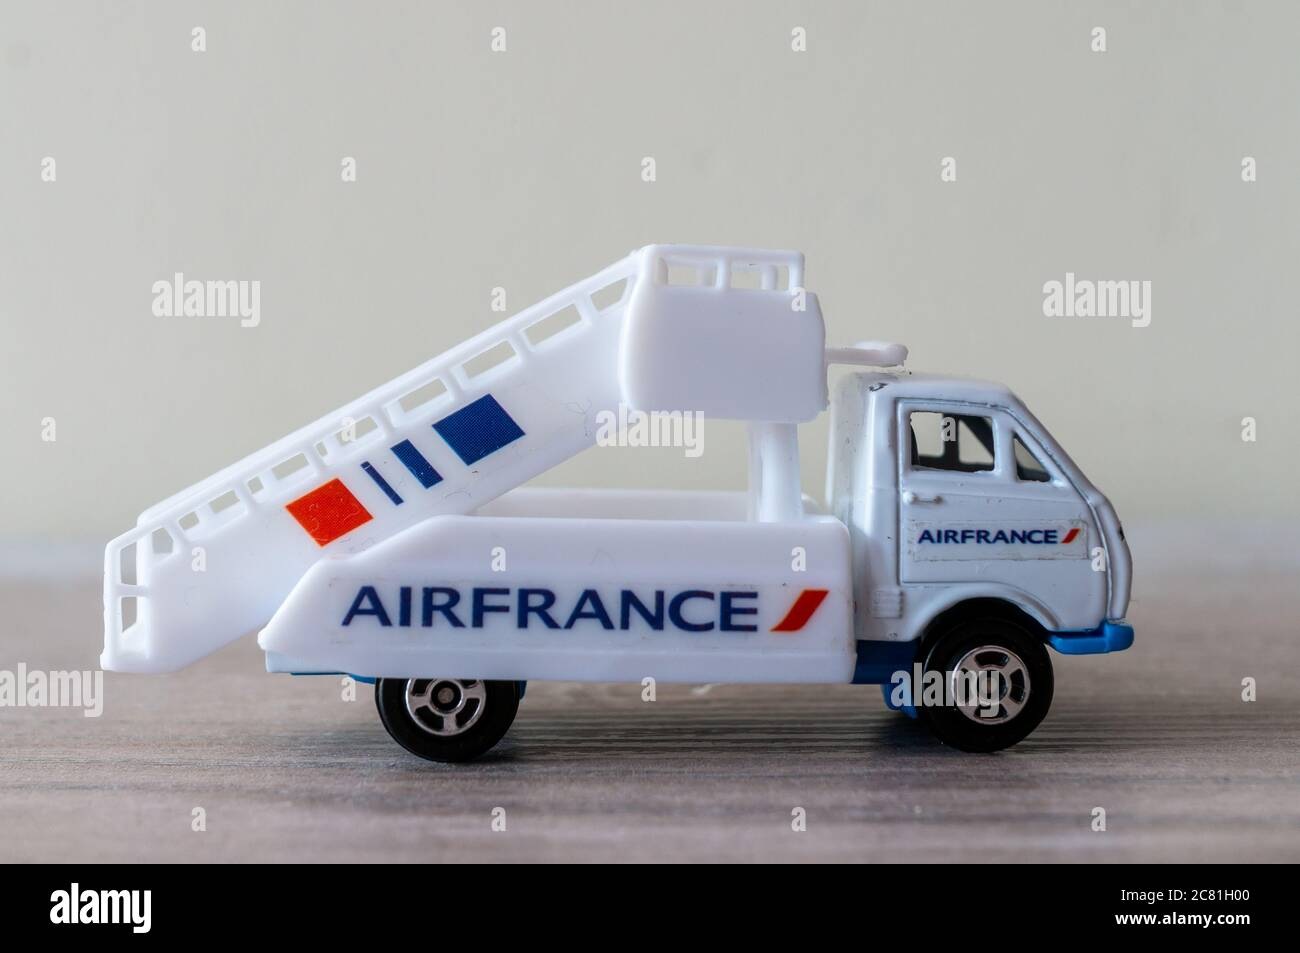 POZNAN, POLAND - Jun 28, 2020: Welly Airfrance airport truck on a wooden surface Stock Photo